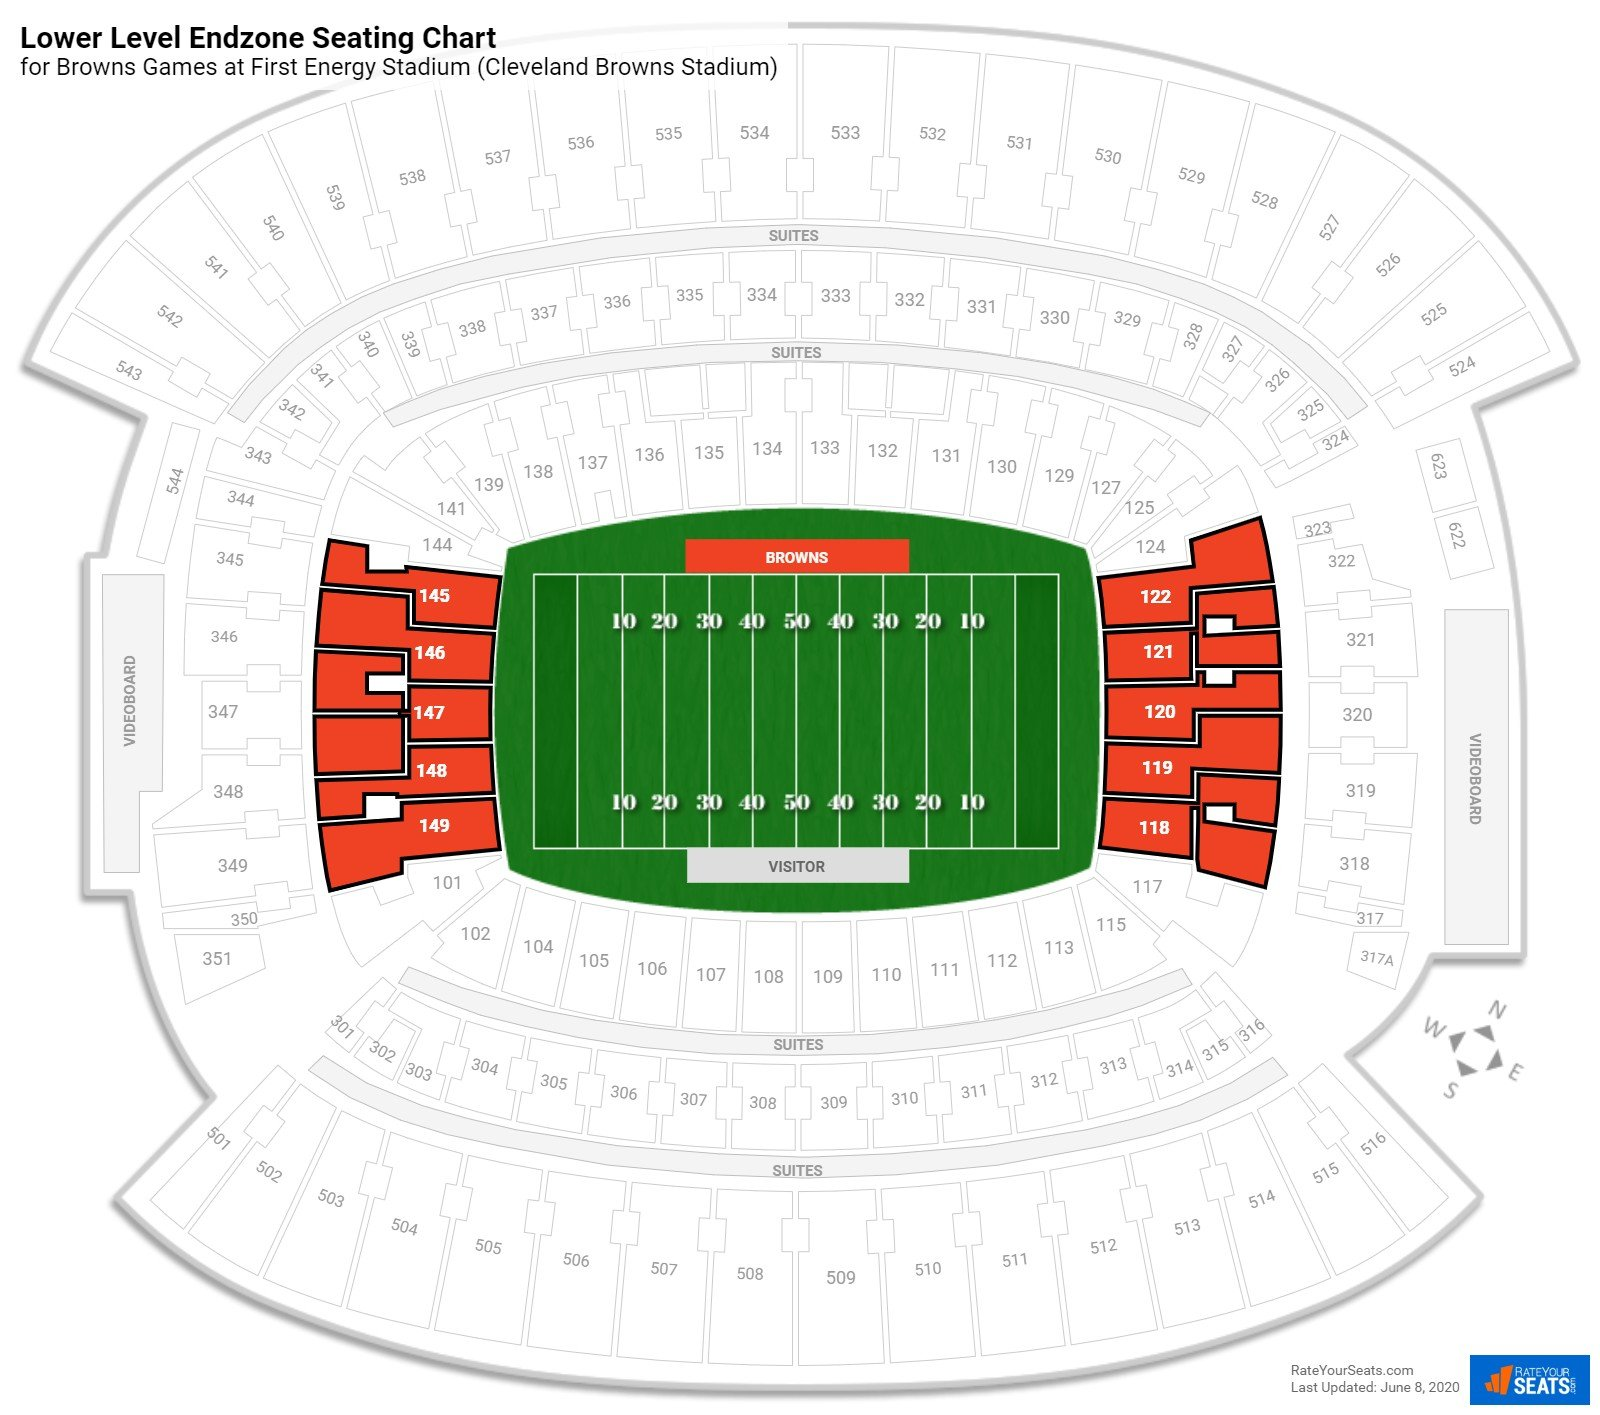 First Energy Stadium (Cleveland Browns Stadium) Lower Level Endzone seating chart